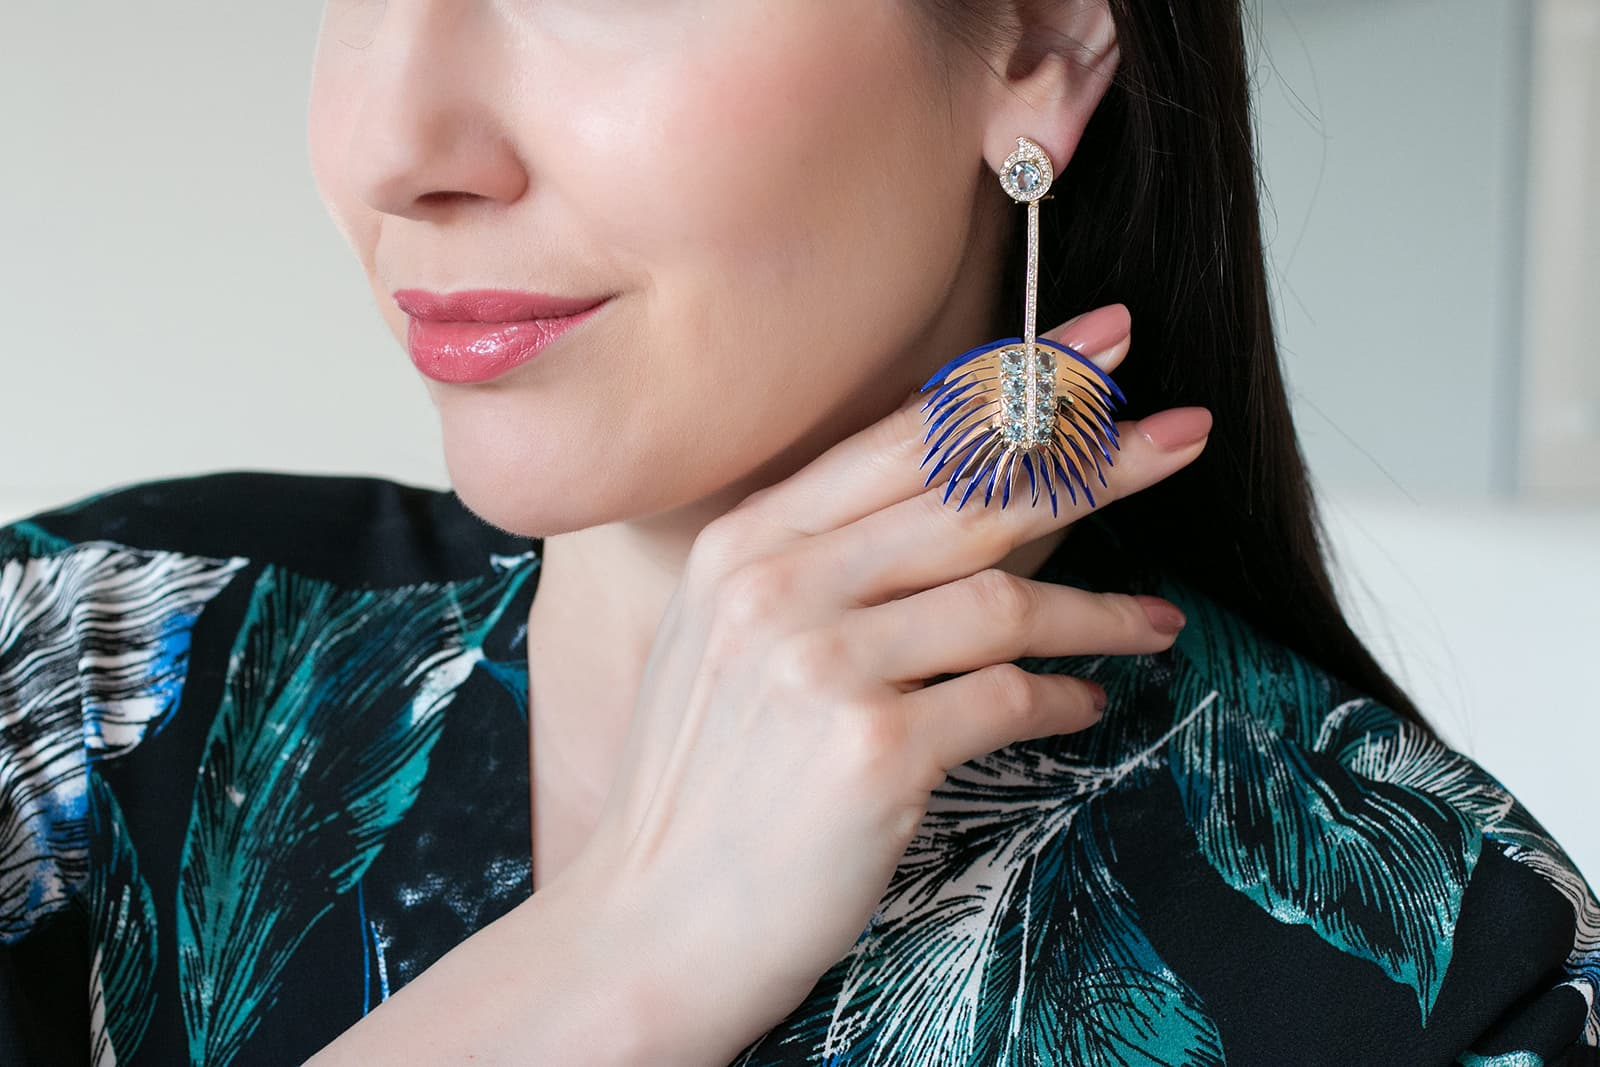 Carol Kauffmann 'Palm' long earrings from the 'Botanica' collection with diamonds and aquamarines in nano-ceramic coated silver and yellow gold